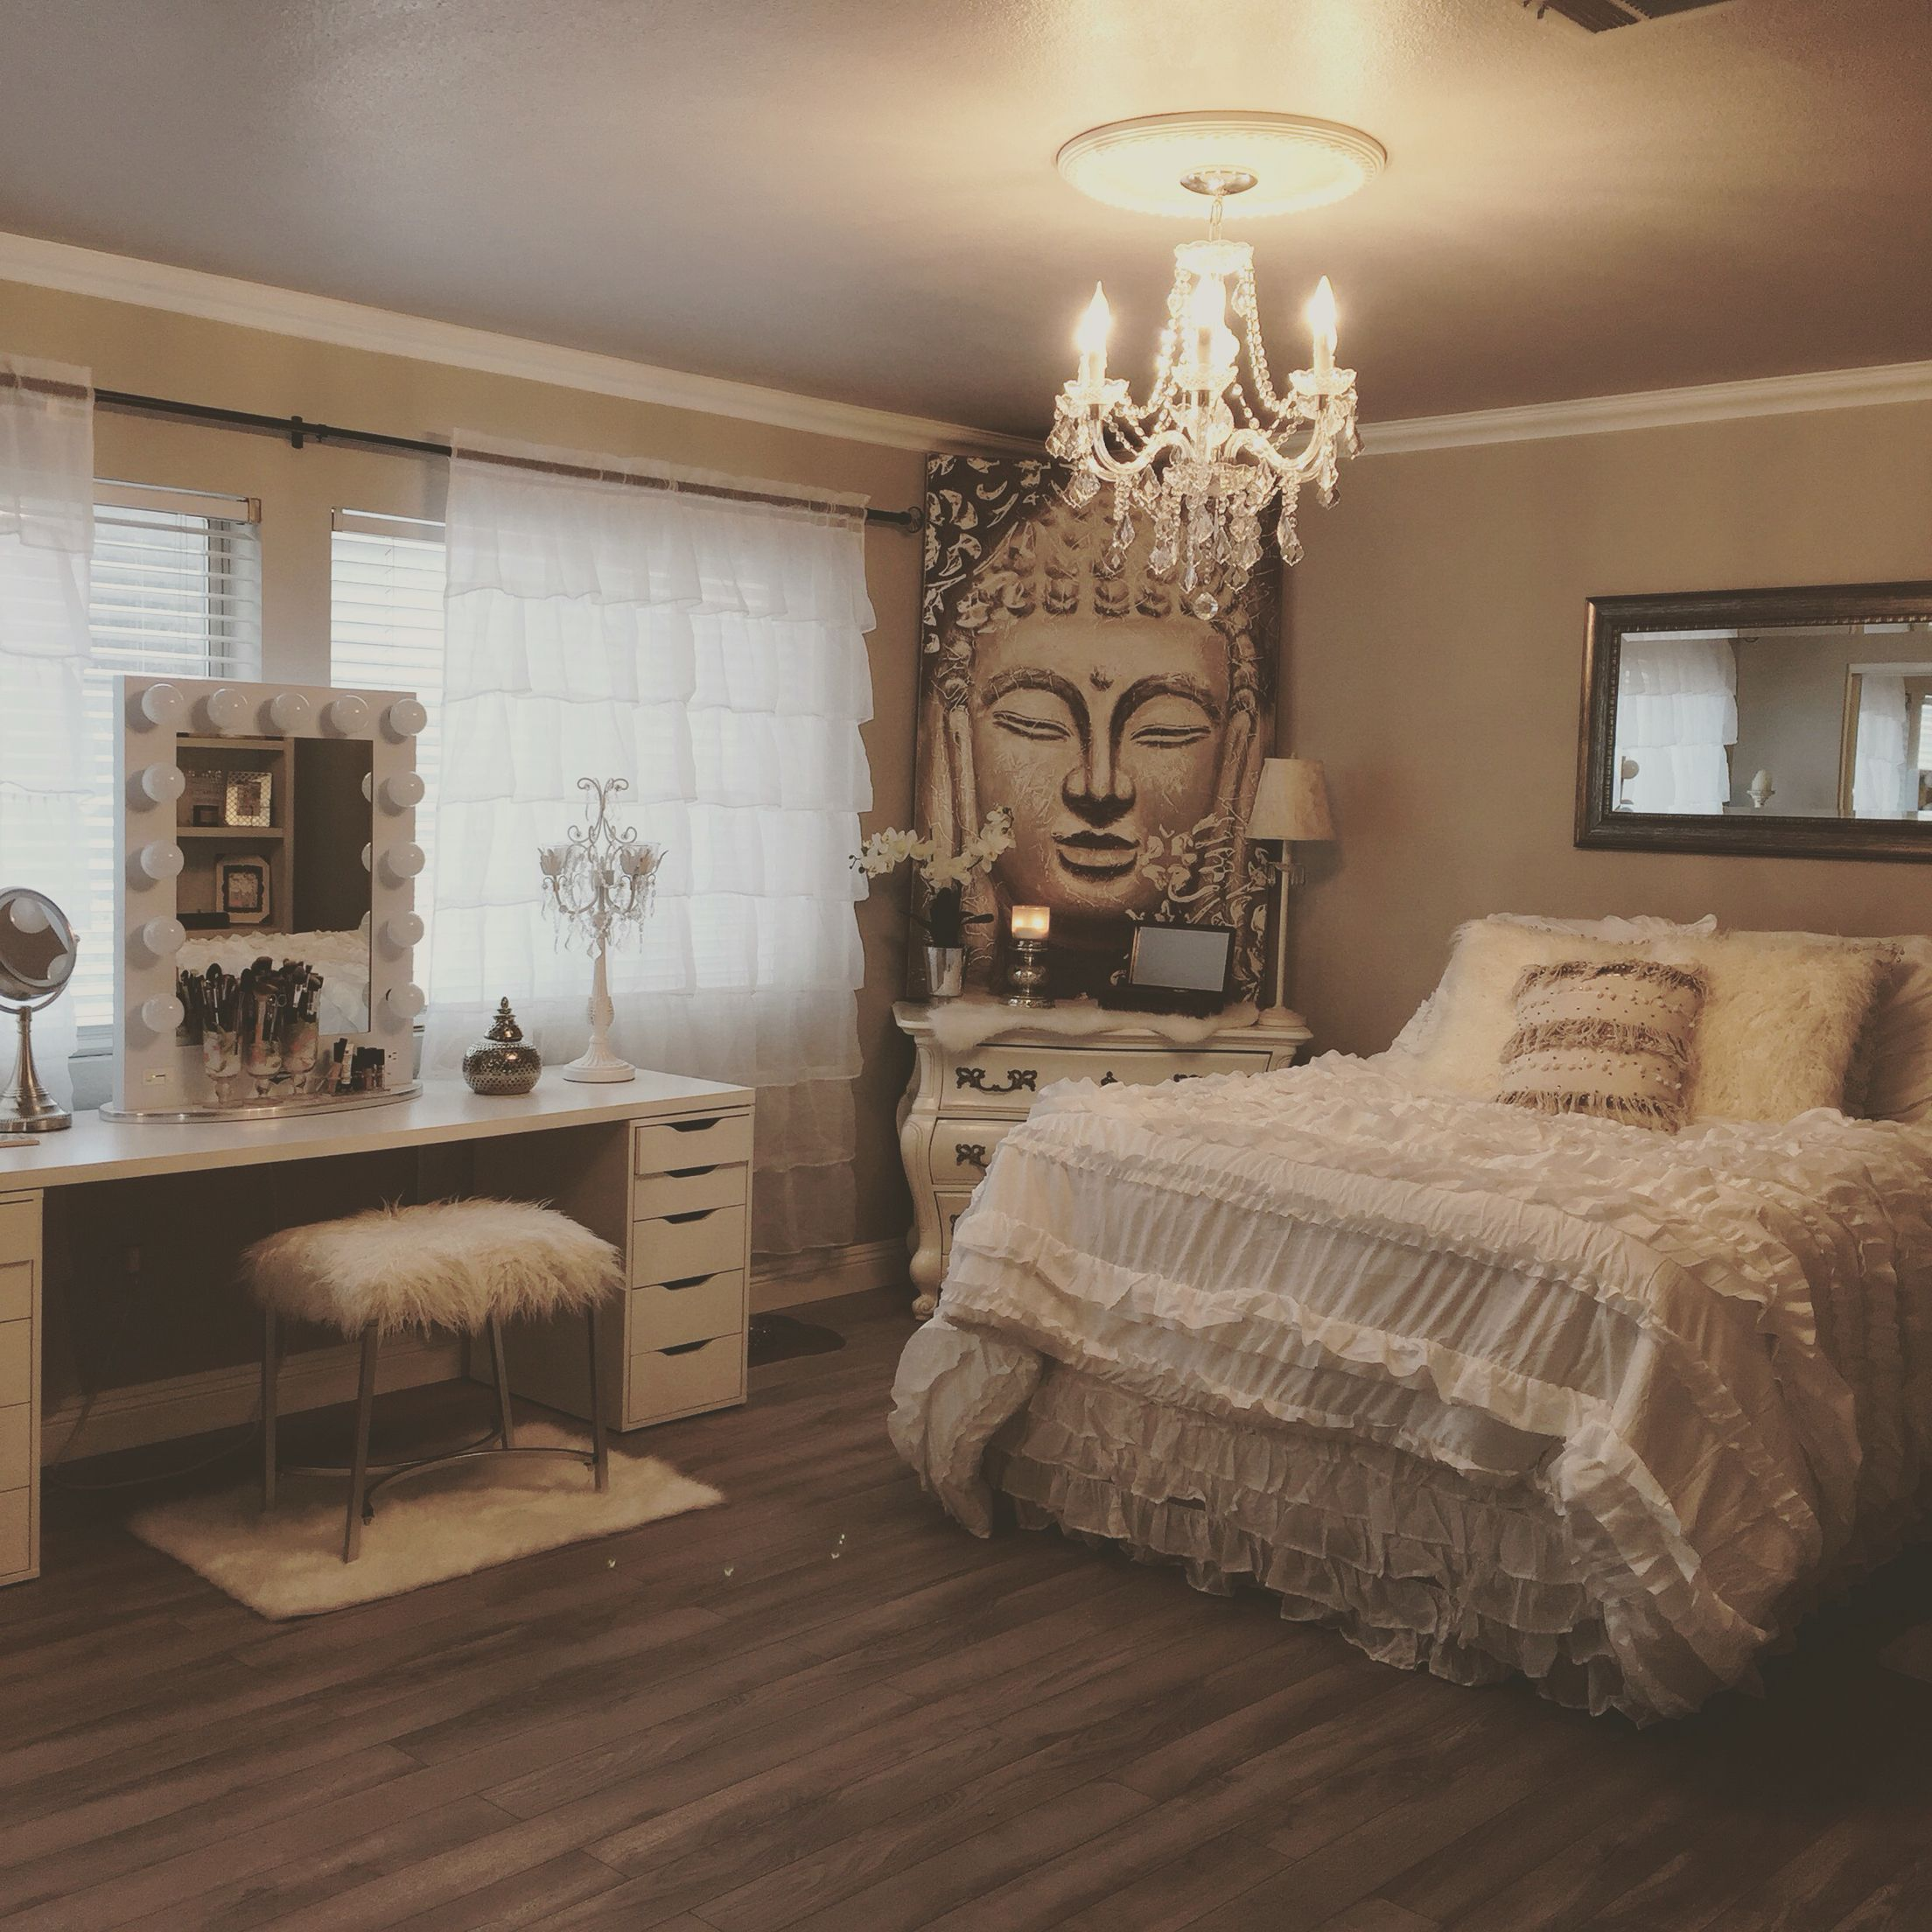 Shabby chic meets zen glam my new bedroom pinterest for Bedroom room decor ideas